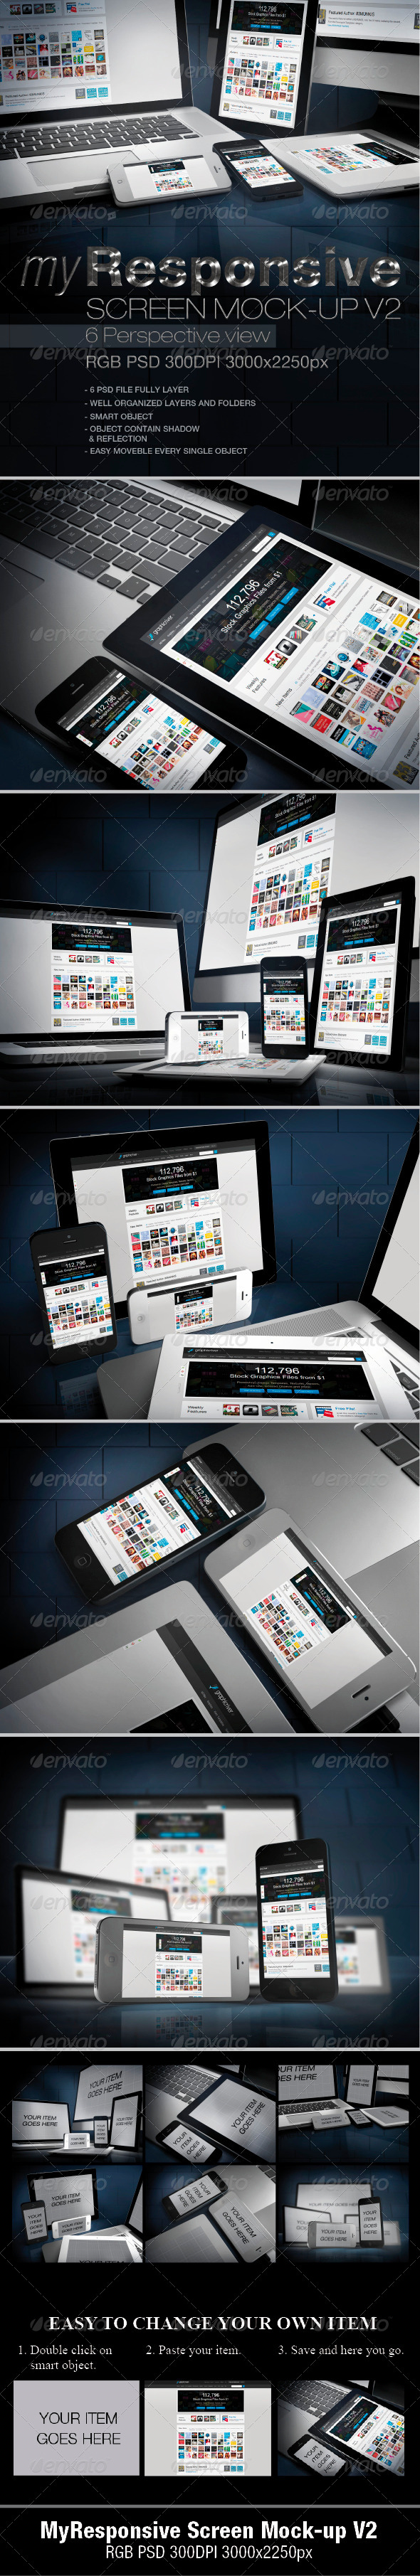 myResponsive screen mock-up V2 - Miscellaneous Apparel